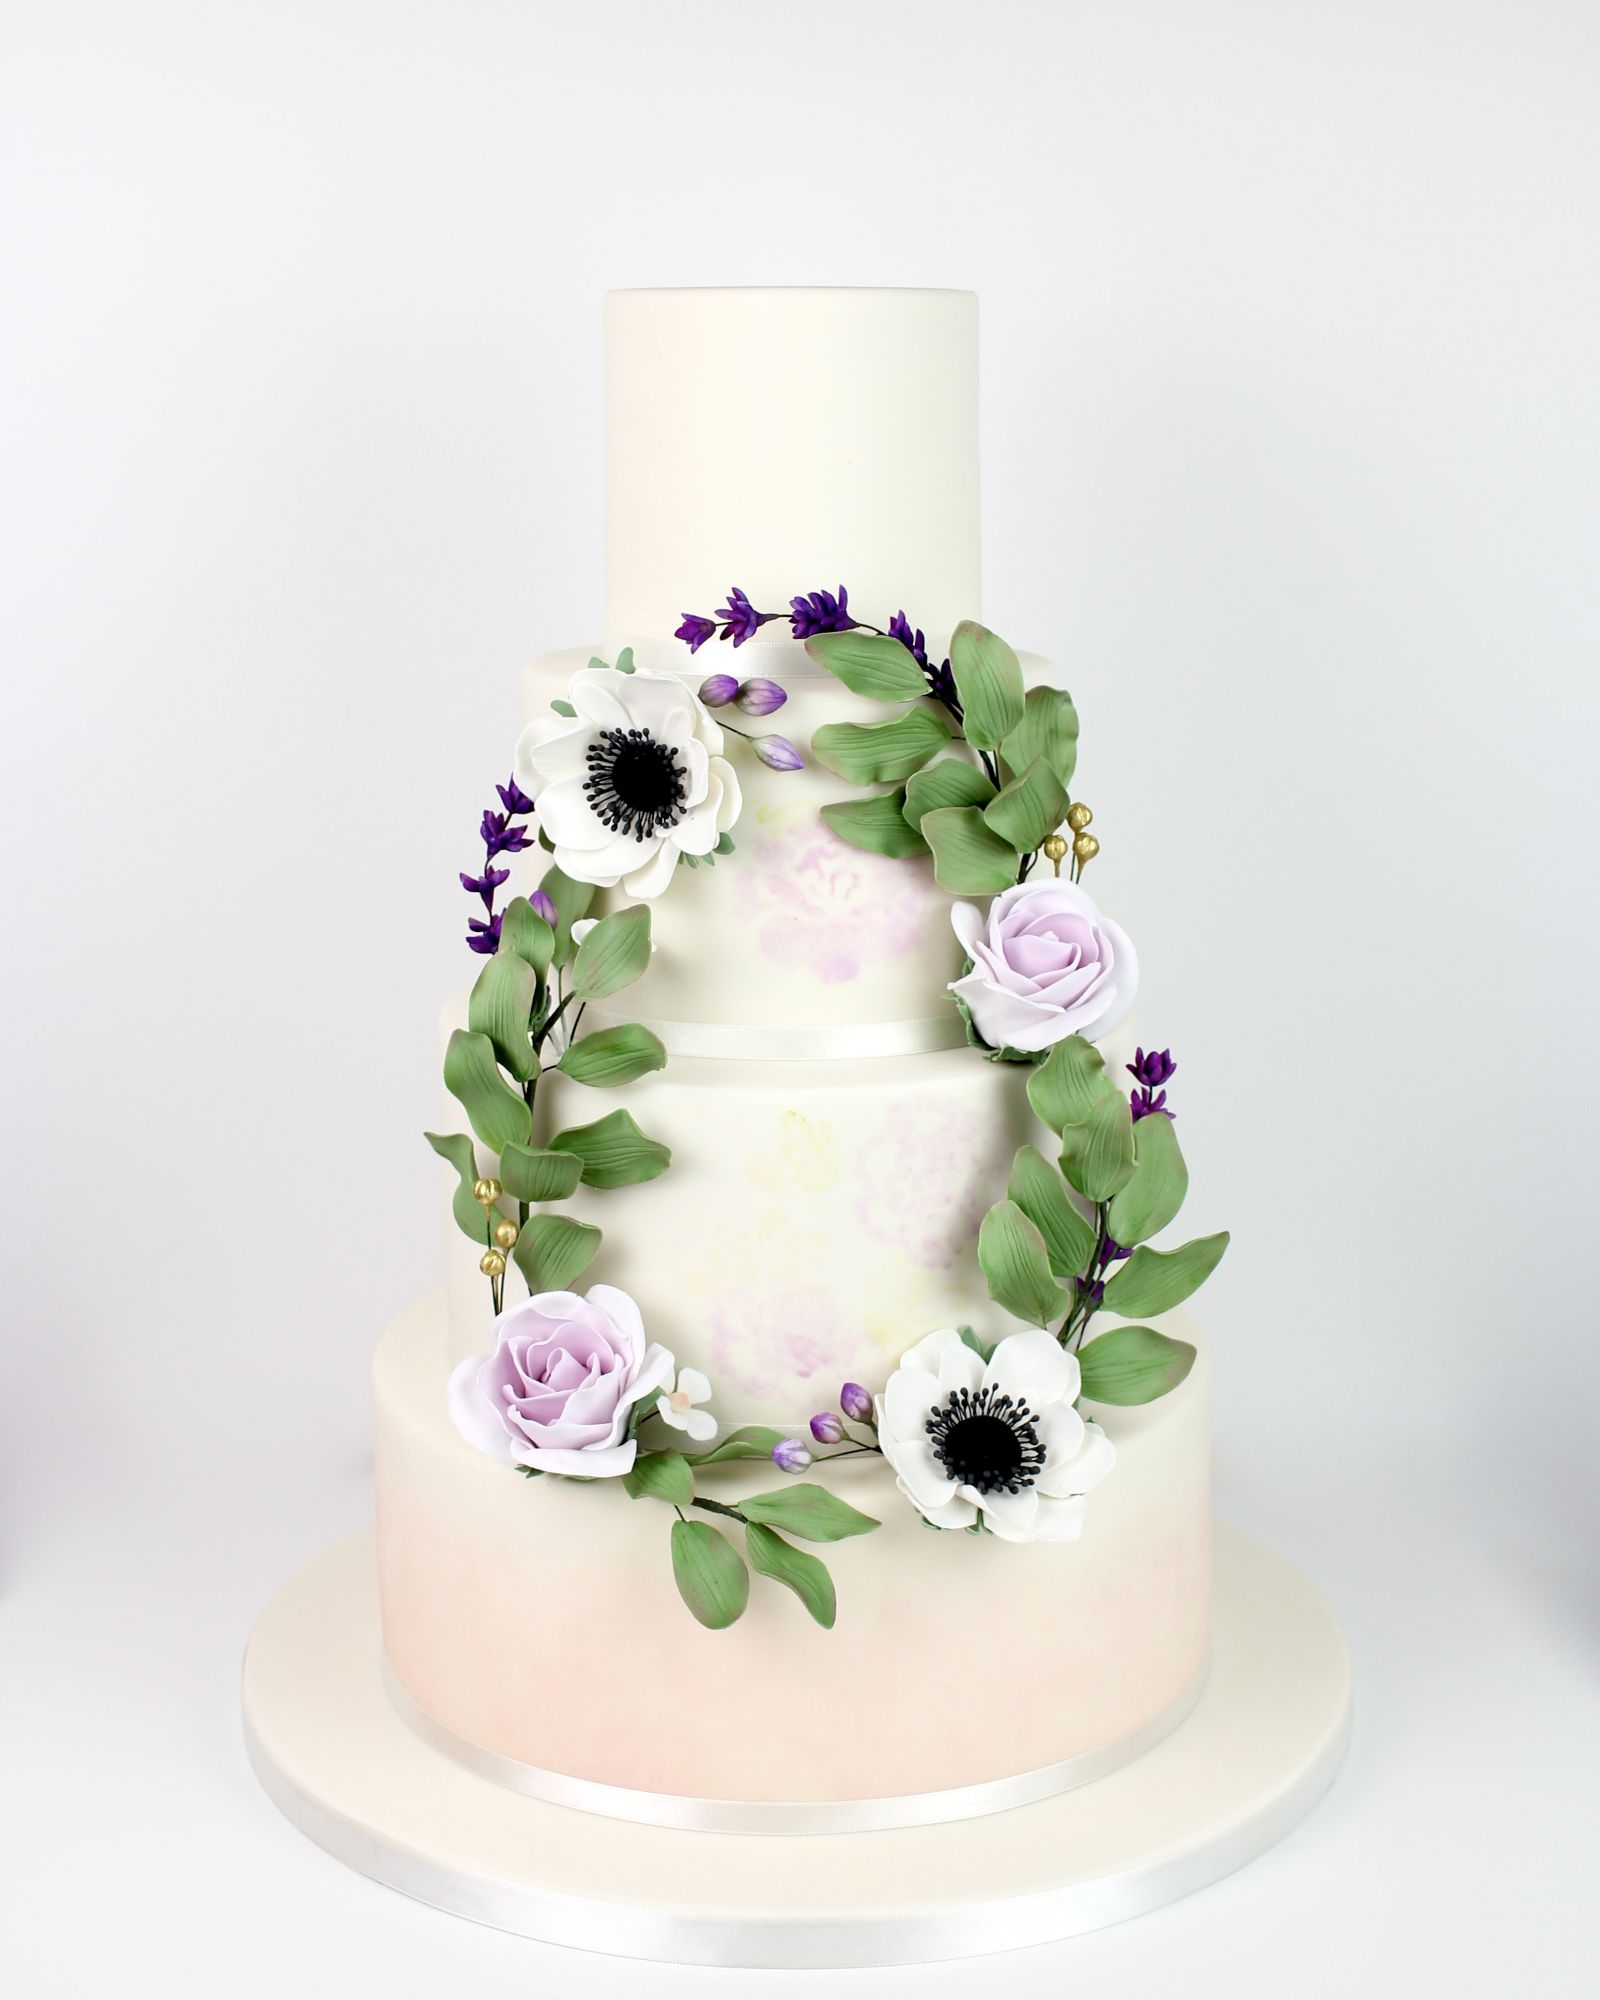 Watercolour flowers and bottom tier hand painted with floral wreath with roses, lavender and anemones.